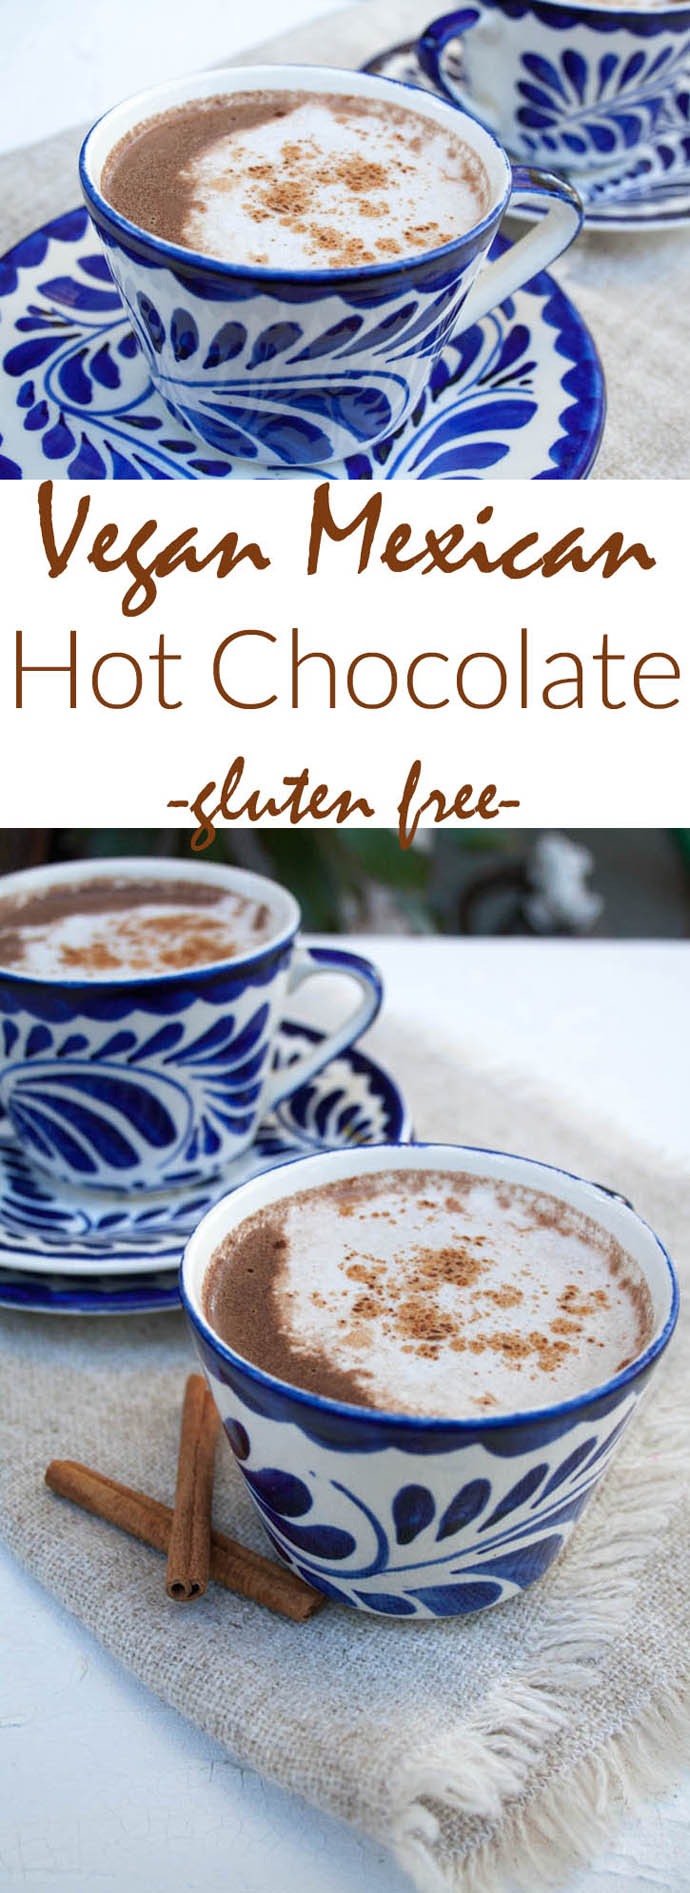 Vegan Mexican Hot Chocolate collage photo with two photos and text in between.